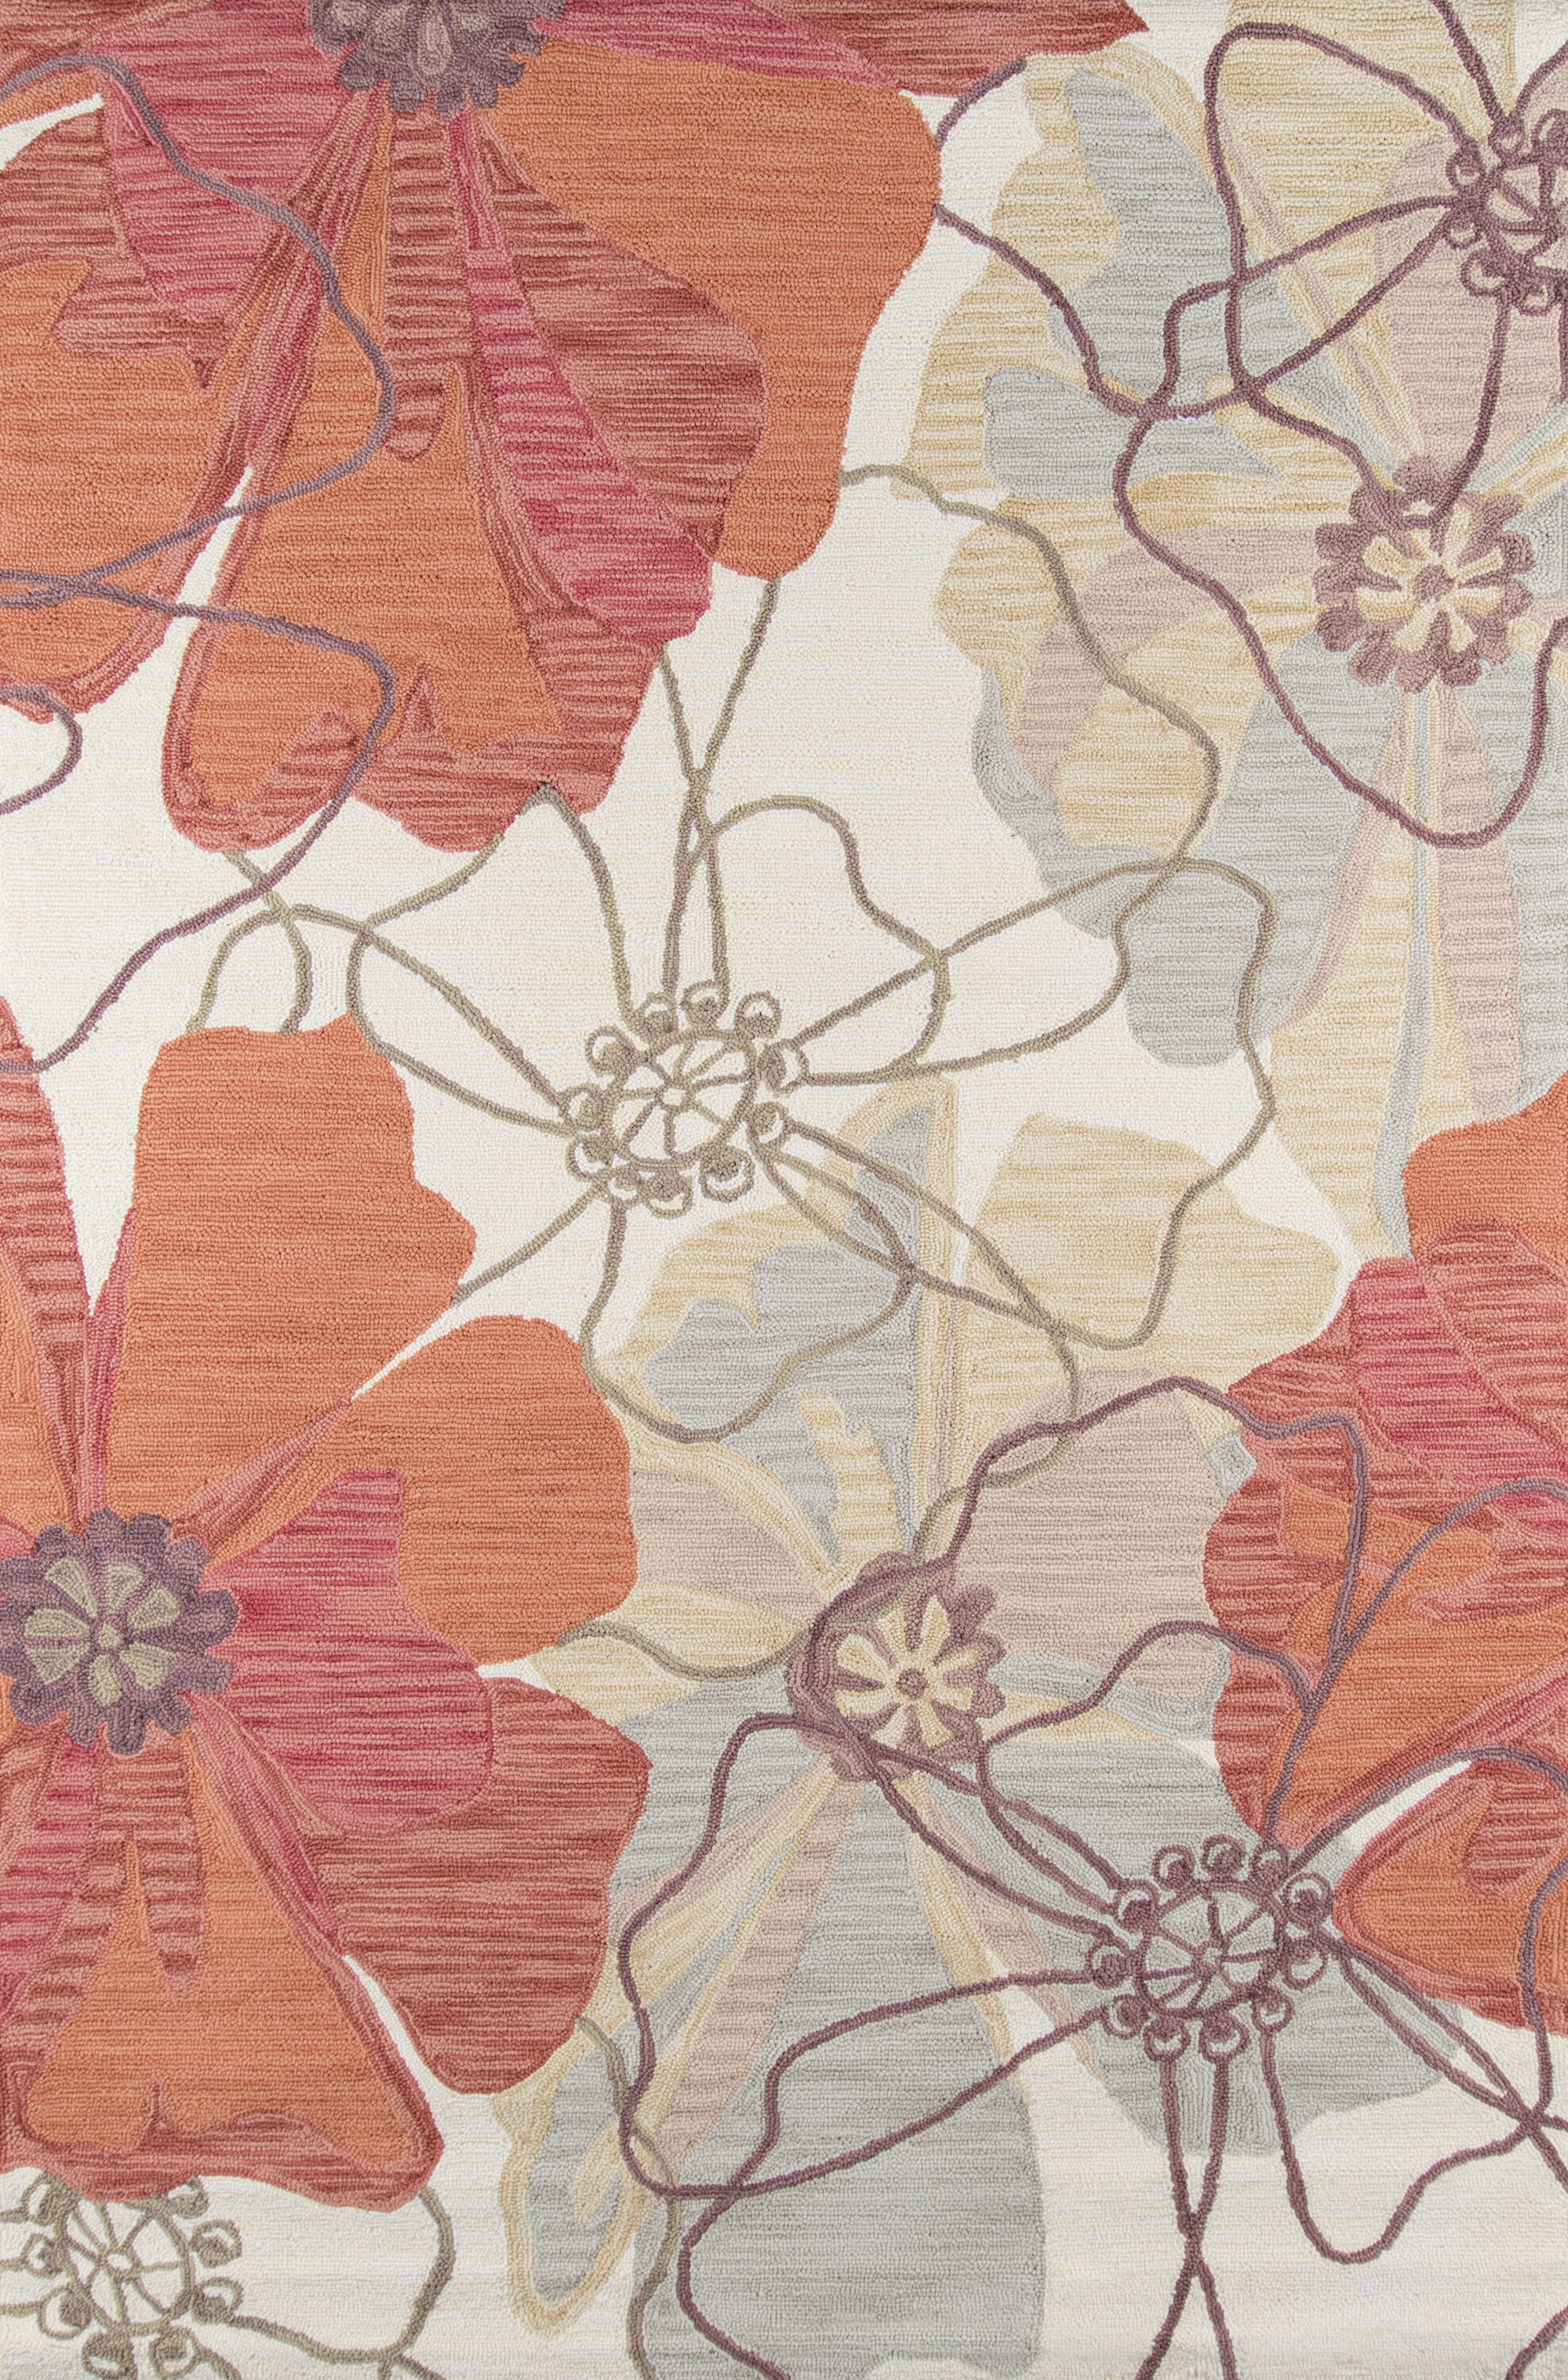 Unionville Hand-Woven Cream/Brown Area Rug Rug Size: Rectangle 5' x 7'6